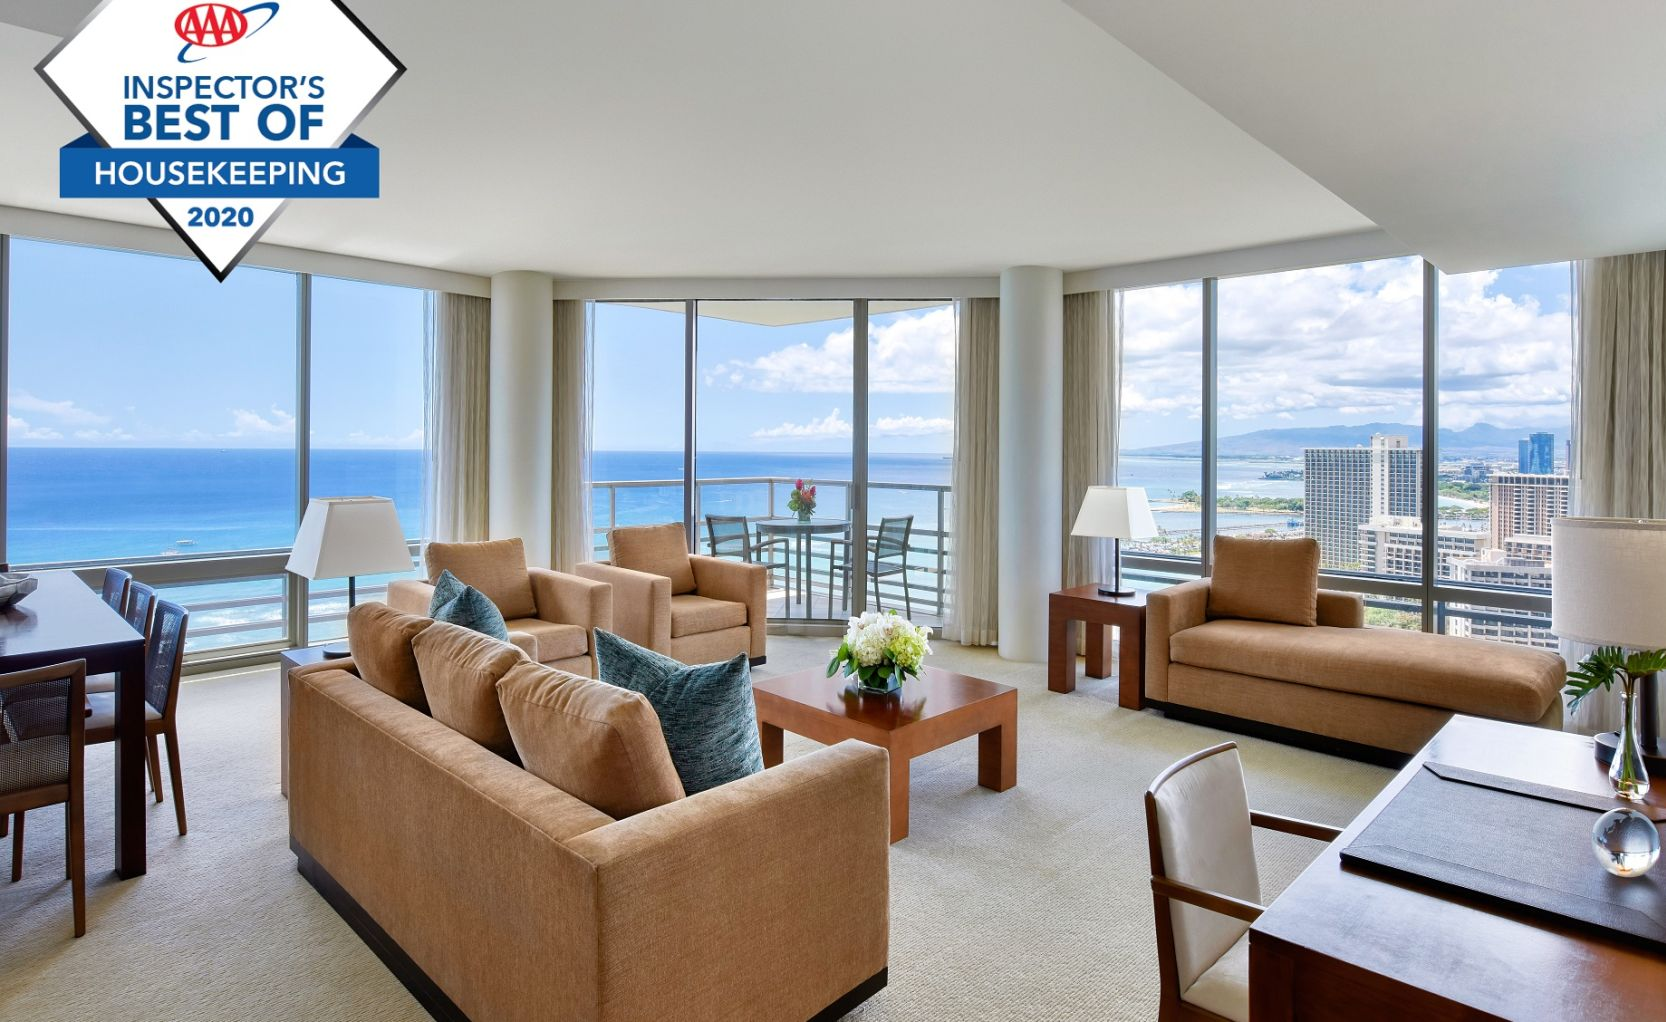 Suite Living Area Overlooking the Ocean with AAA Award